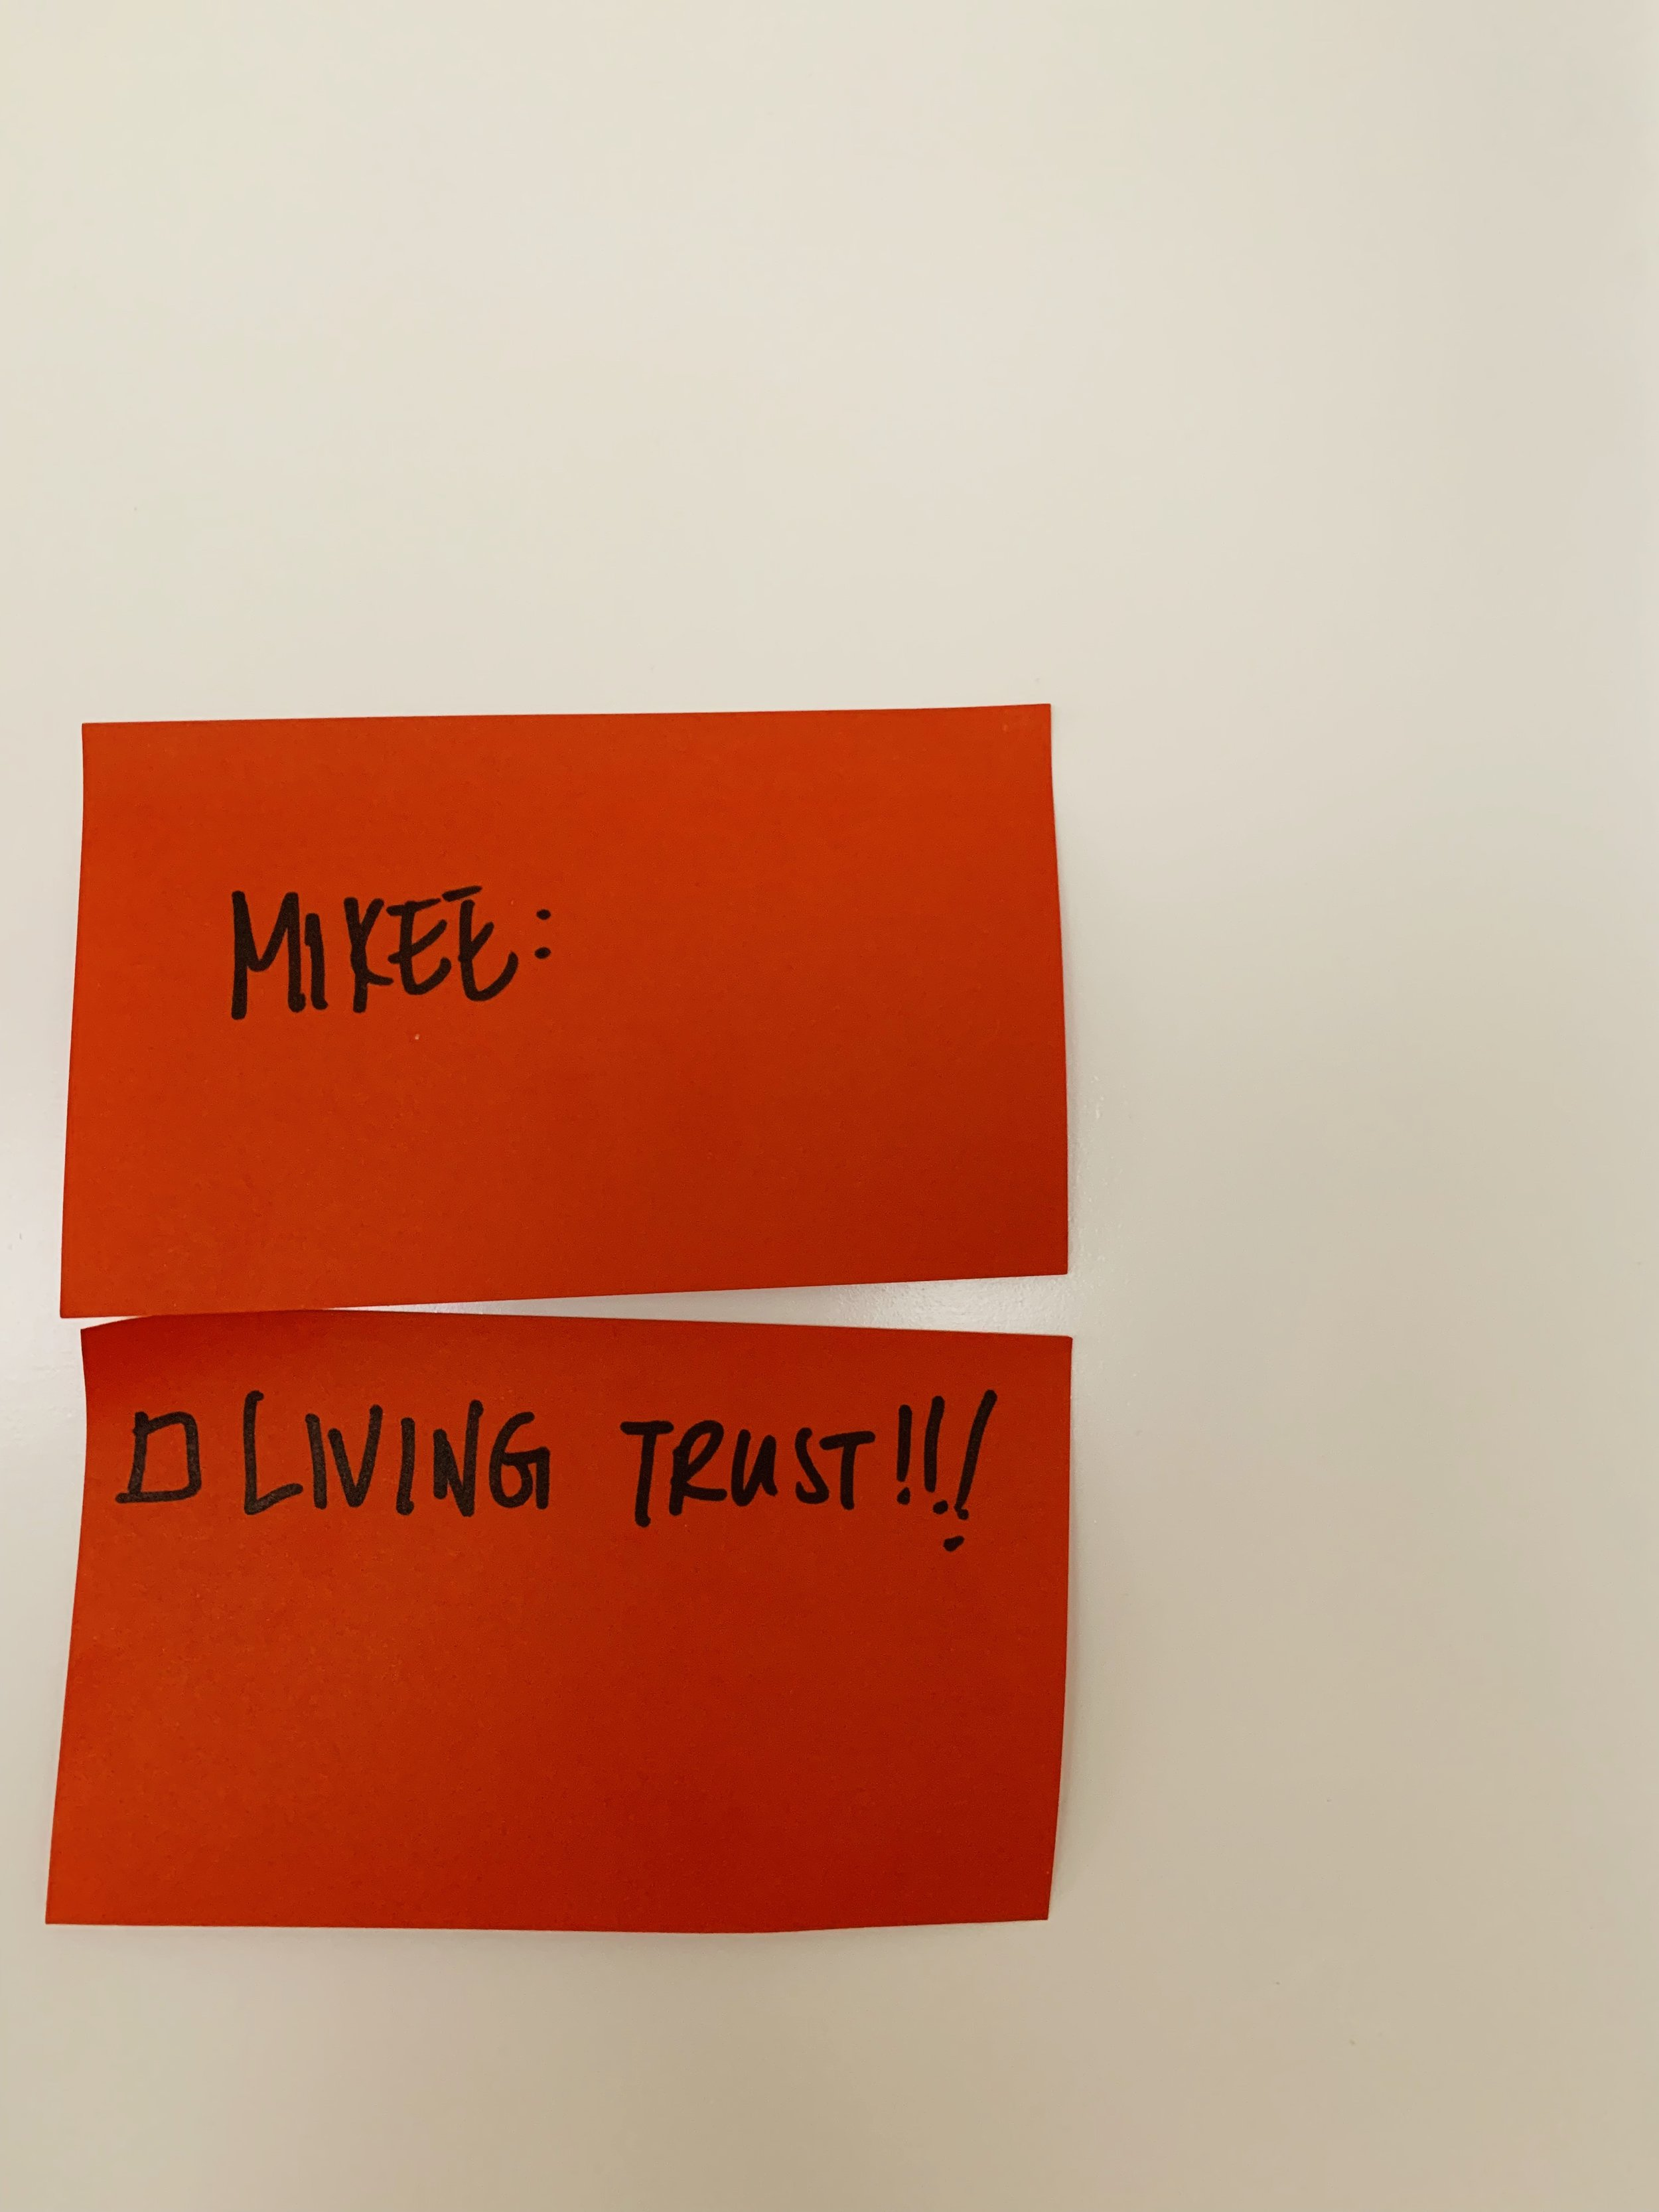 The scariest thing takes the longest time - Our living trust has been on our to-do list for 6 whole years. While the post-its have dried up and dropped off, it continues to plague my mind and heart. It's not an easy topic to discuss - Who should be our kids' parents if we die? Why? And are they onboard? You and your partner might actually have different perspectives on this. At the very least, start talking about it now.